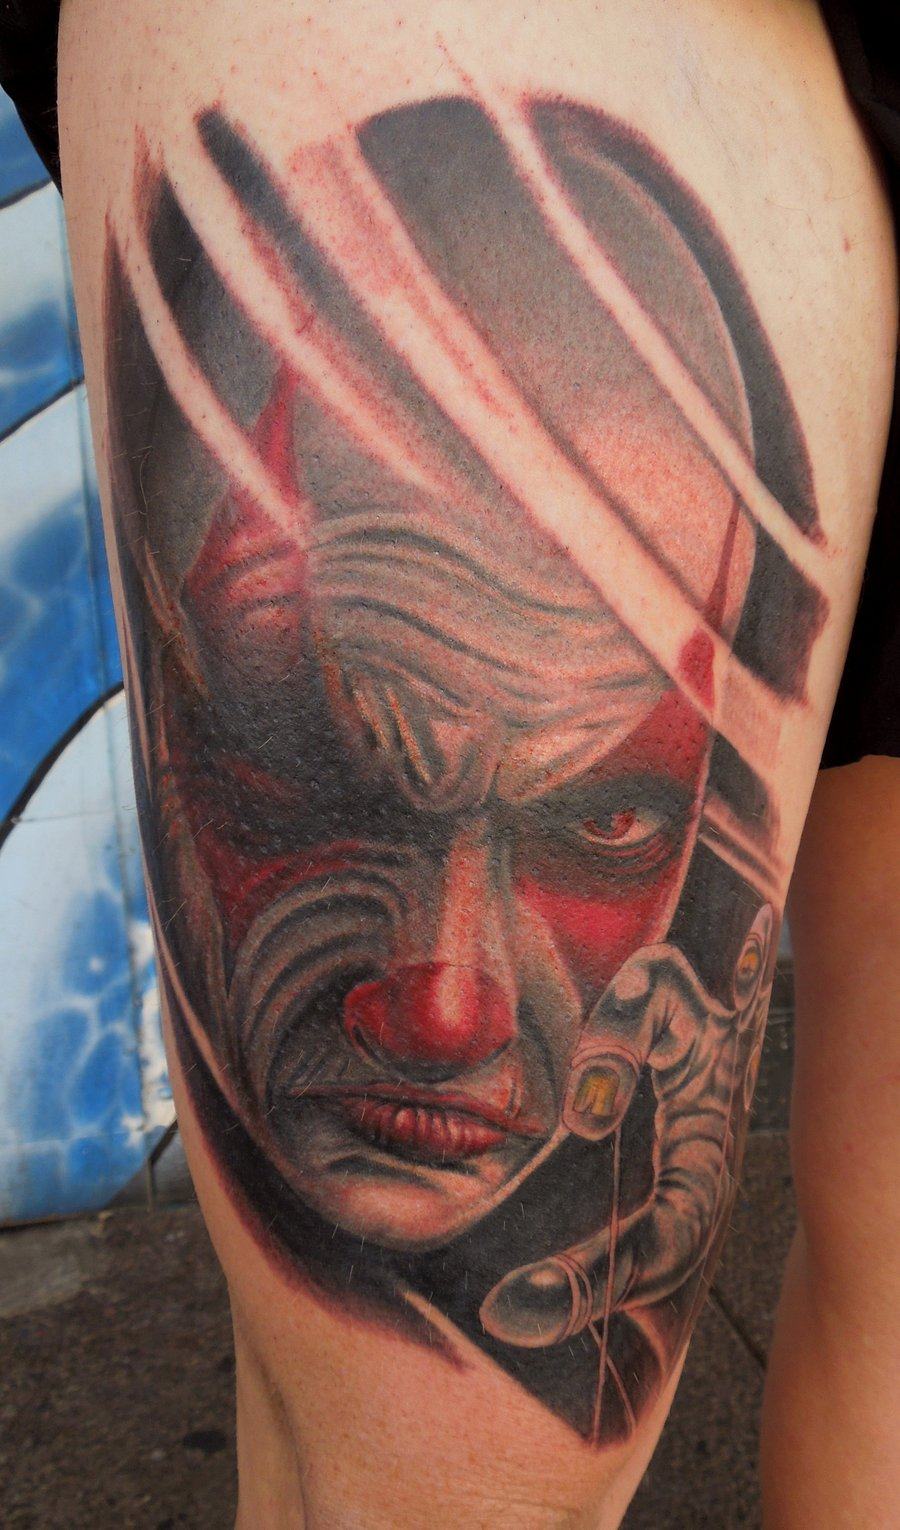 80 crazy and amazing tattoo designs for men and women desiznworld - Download